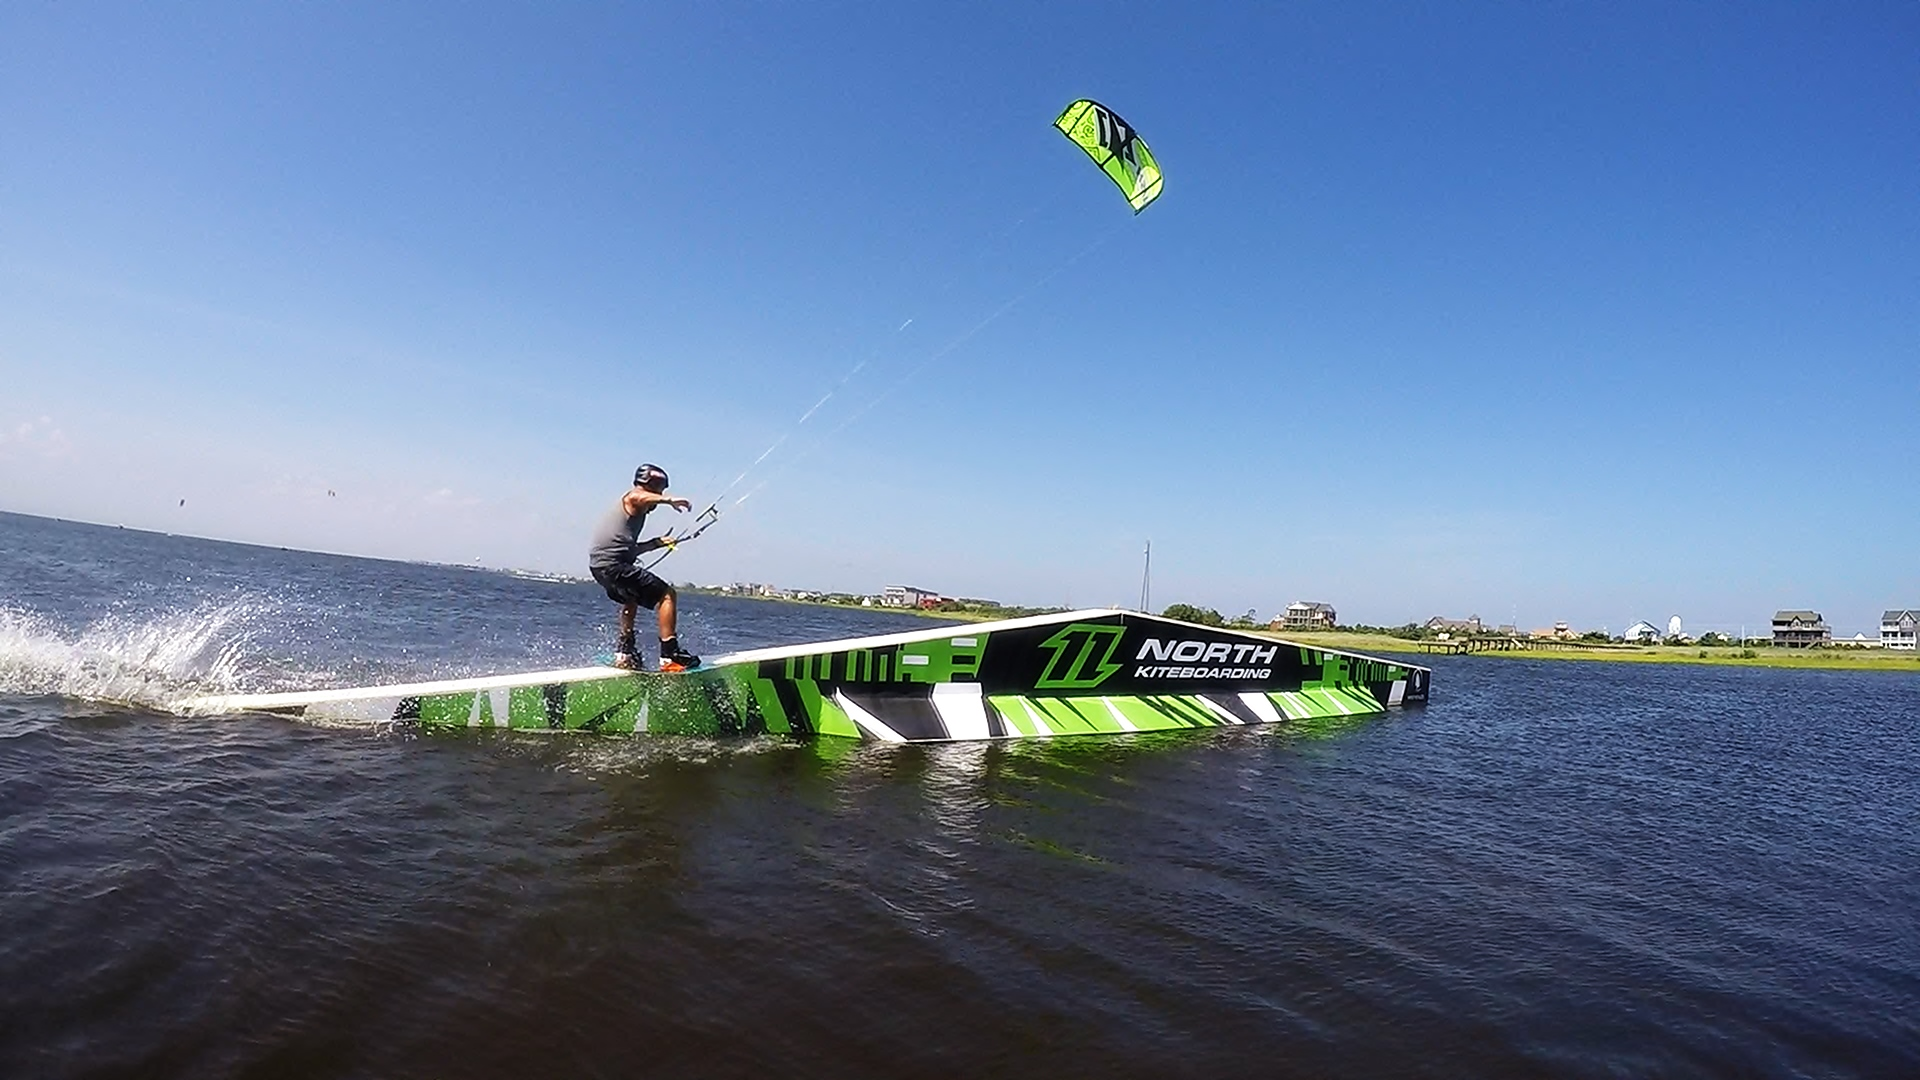 Kiteboarding freestyle on North slider with Naish gear